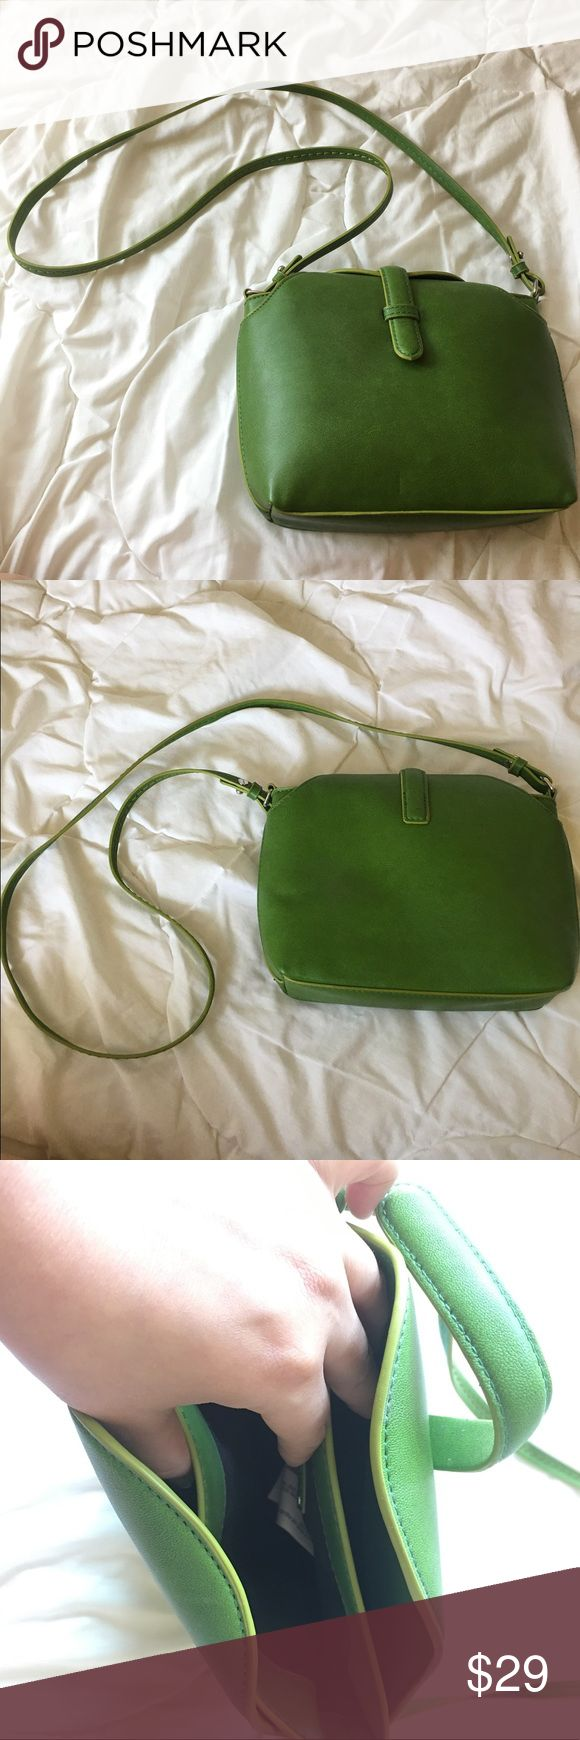 Zara Purse Adorable Zara bright green purse. Very unique styling. Lots of storage. 3 different pockets within the bag. Small black mark on the bag as pictured. Really good condition otherwise. Faux leather. Zara Bags Crossbody Bags